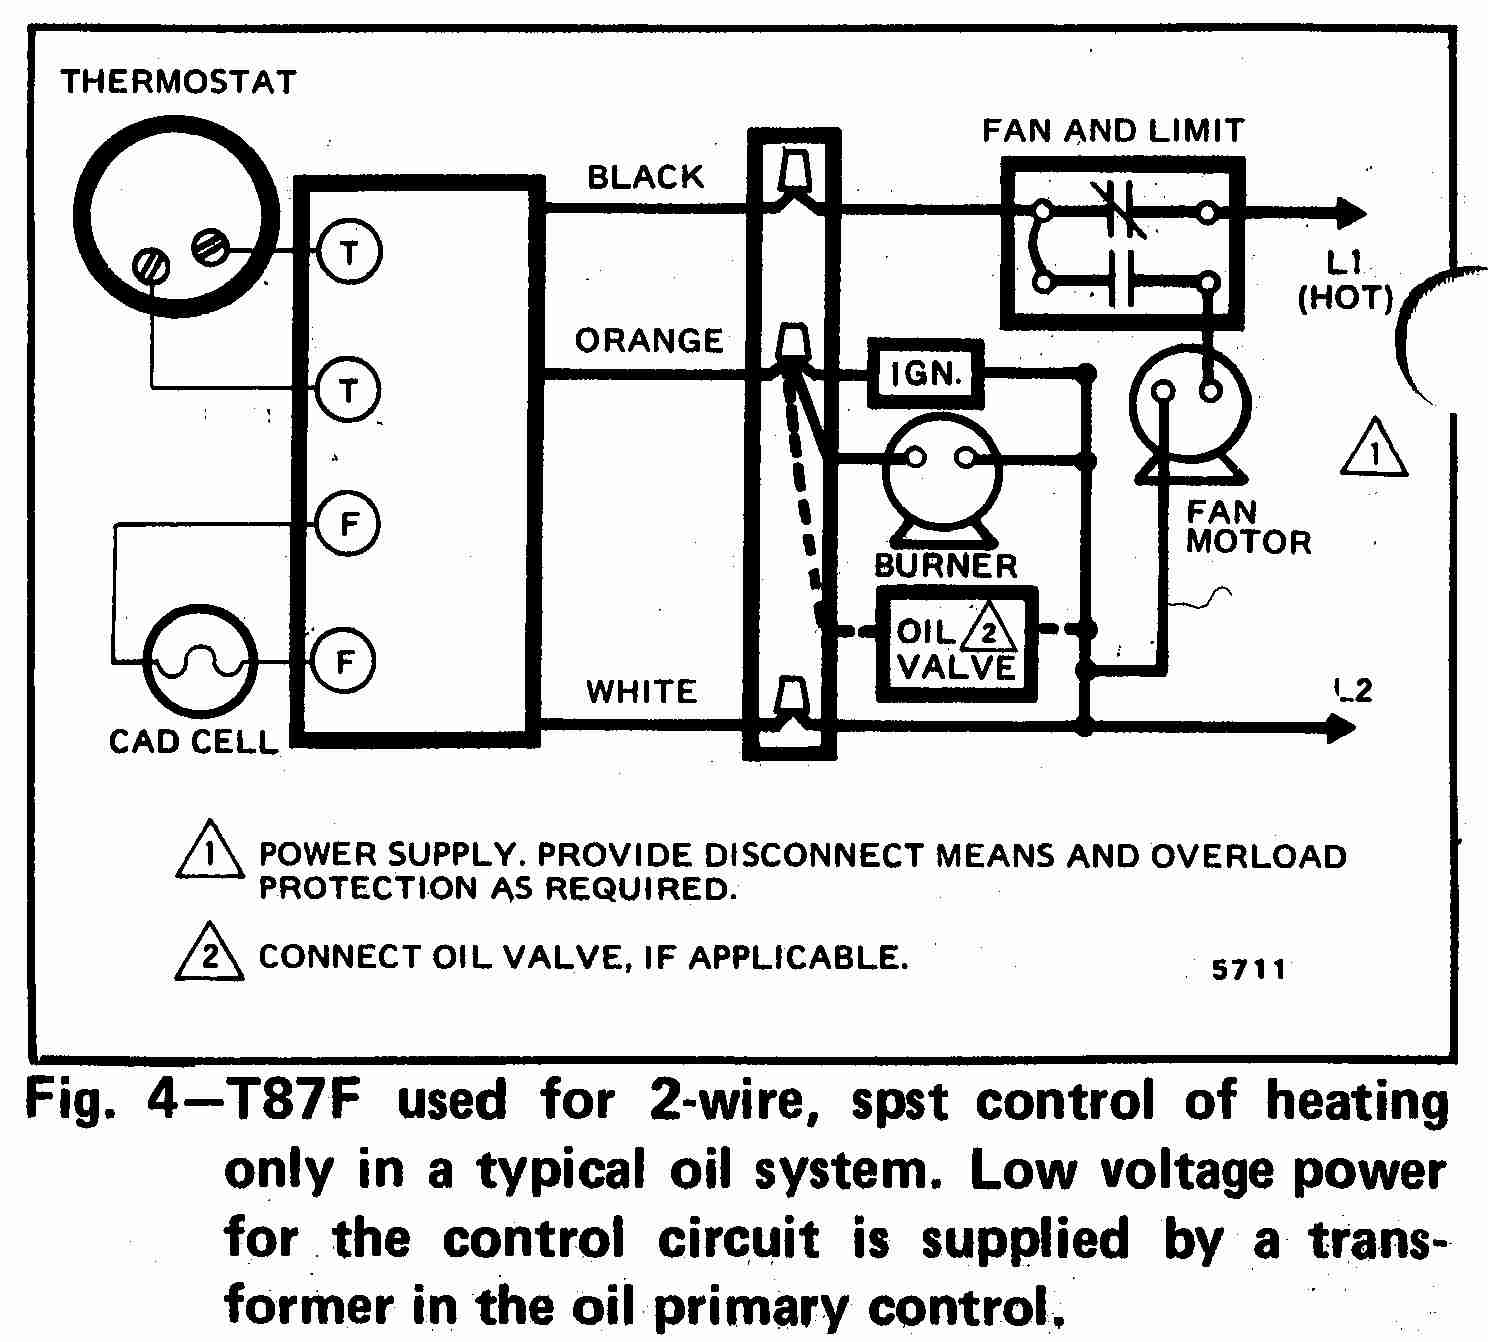 room stat wiring diagram ford fiesta radio irg lektionenderliebe de thermostat diagrams for hvac systems rh inspectapedia com nest thermostats